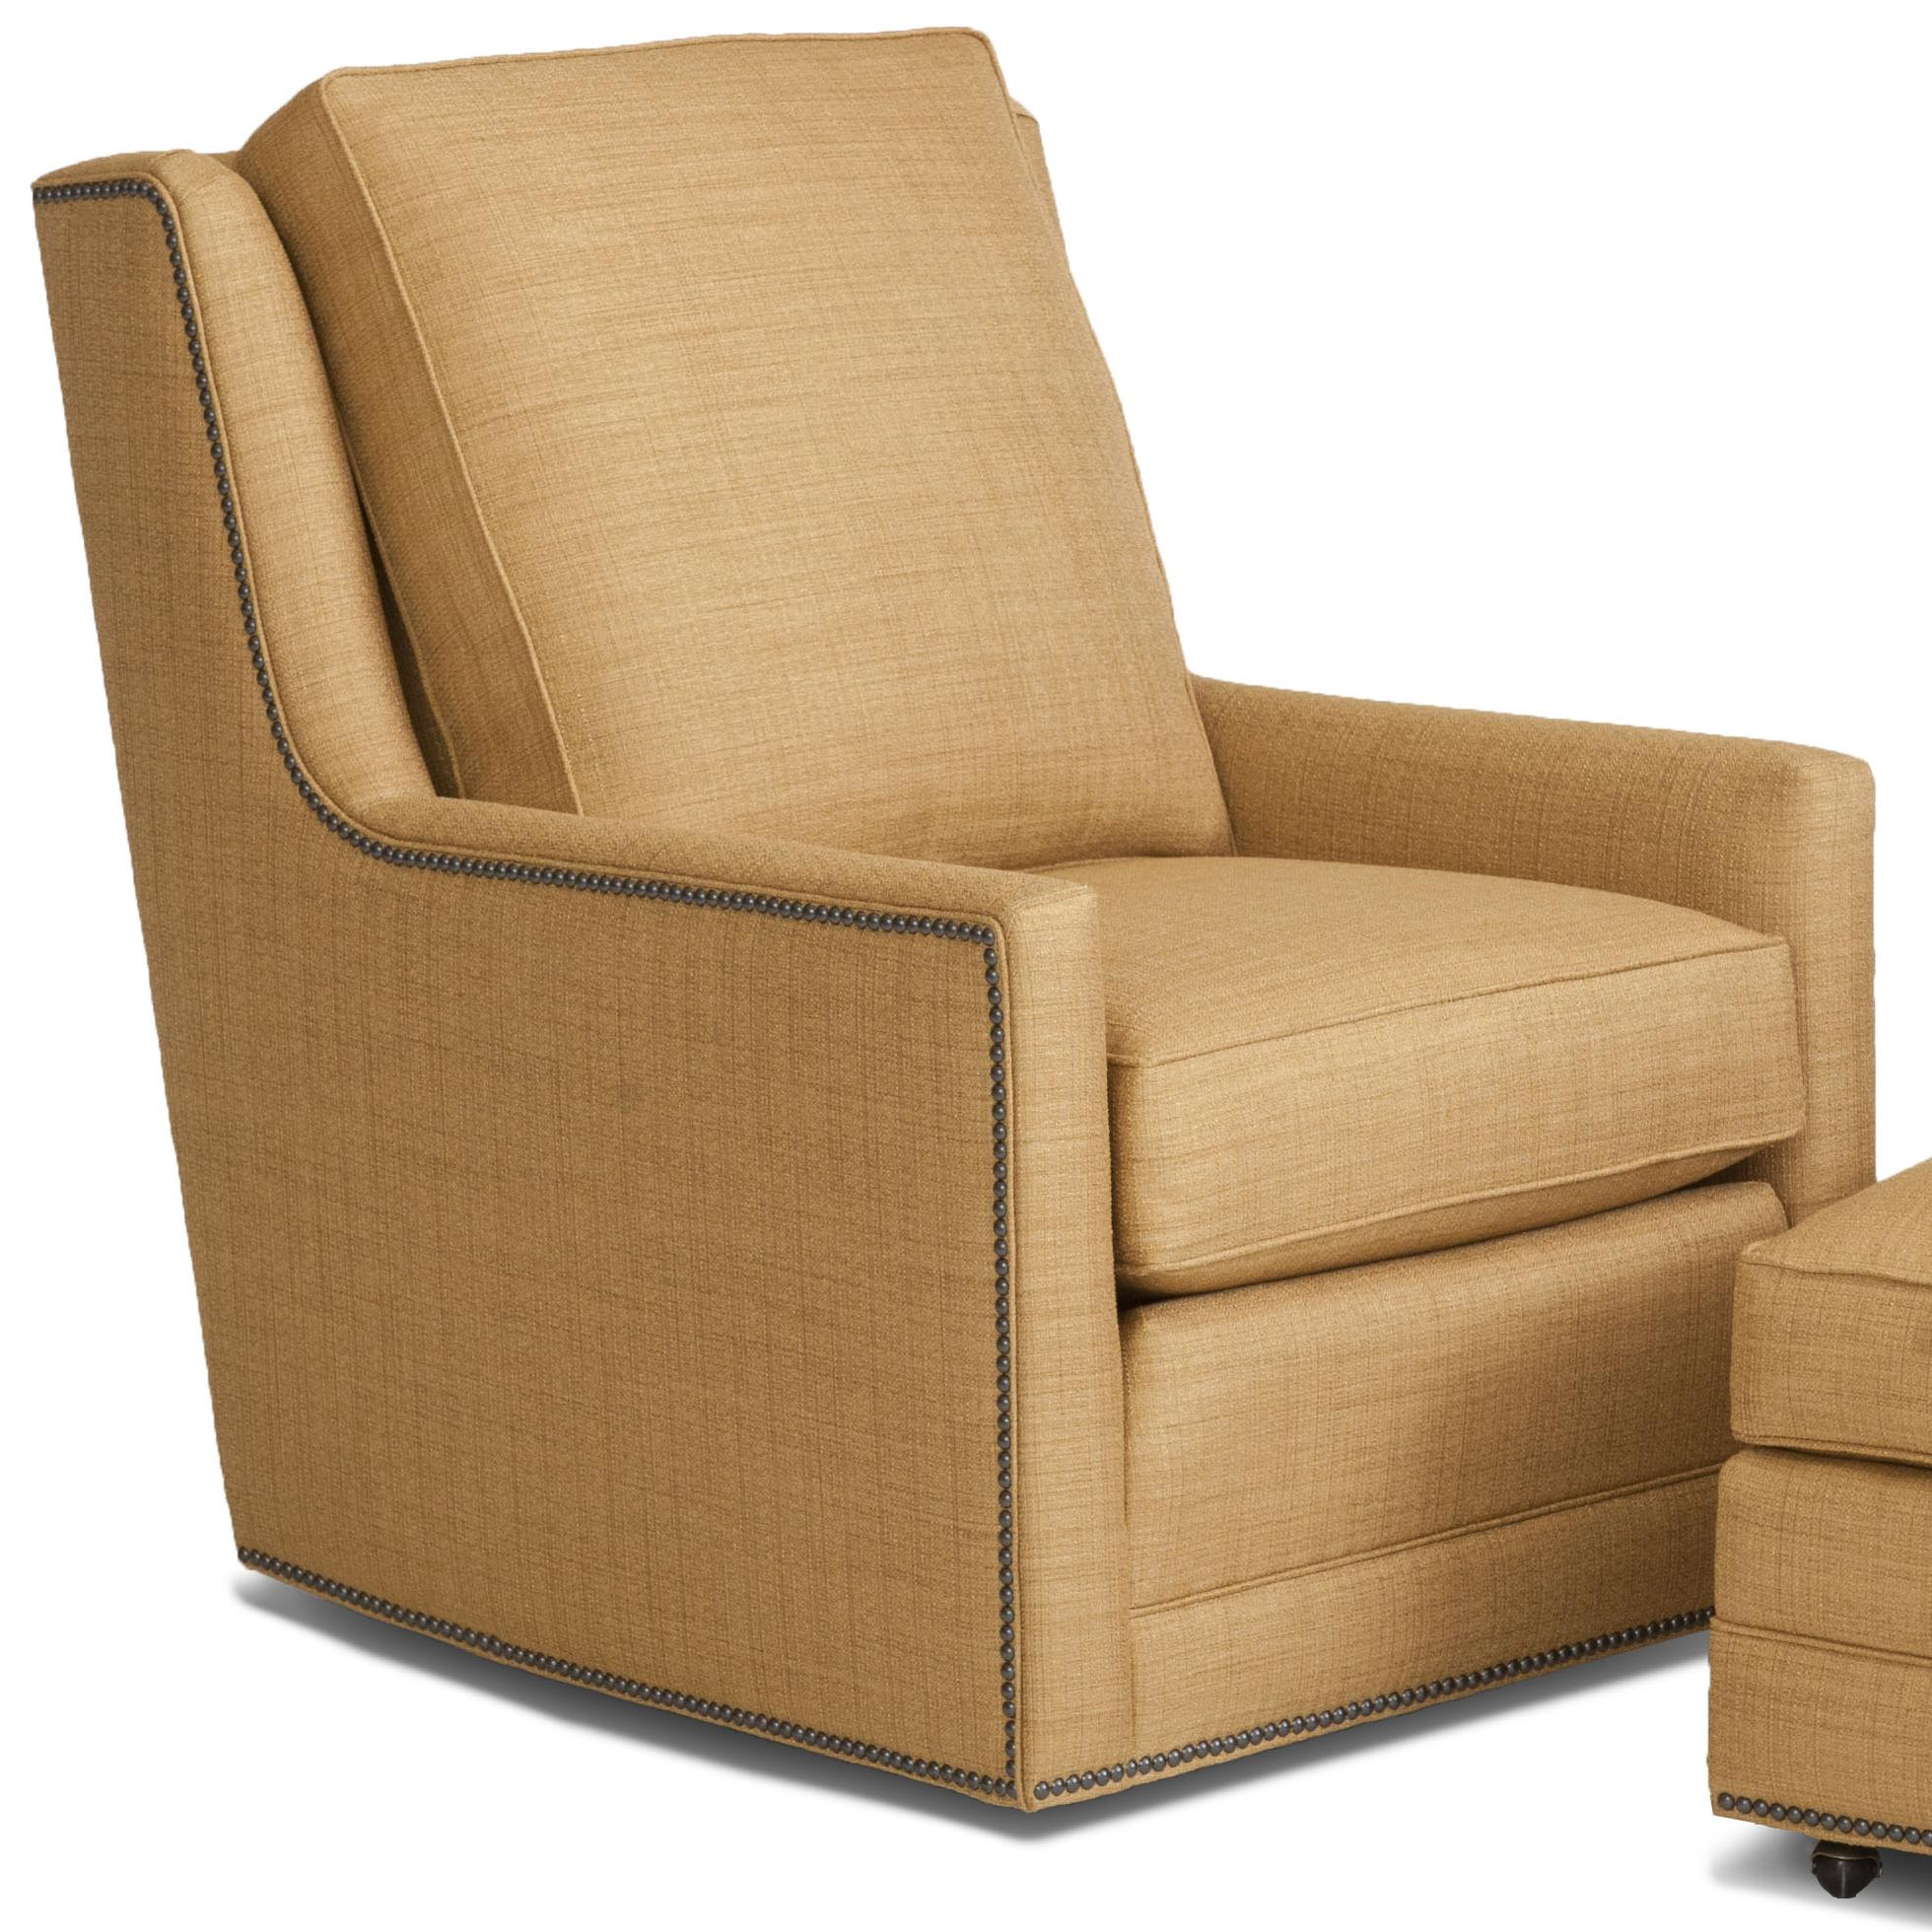 Accent Chairs and Ottomans SB Swivel Chair by Smith Brothers at Mueller Furniture